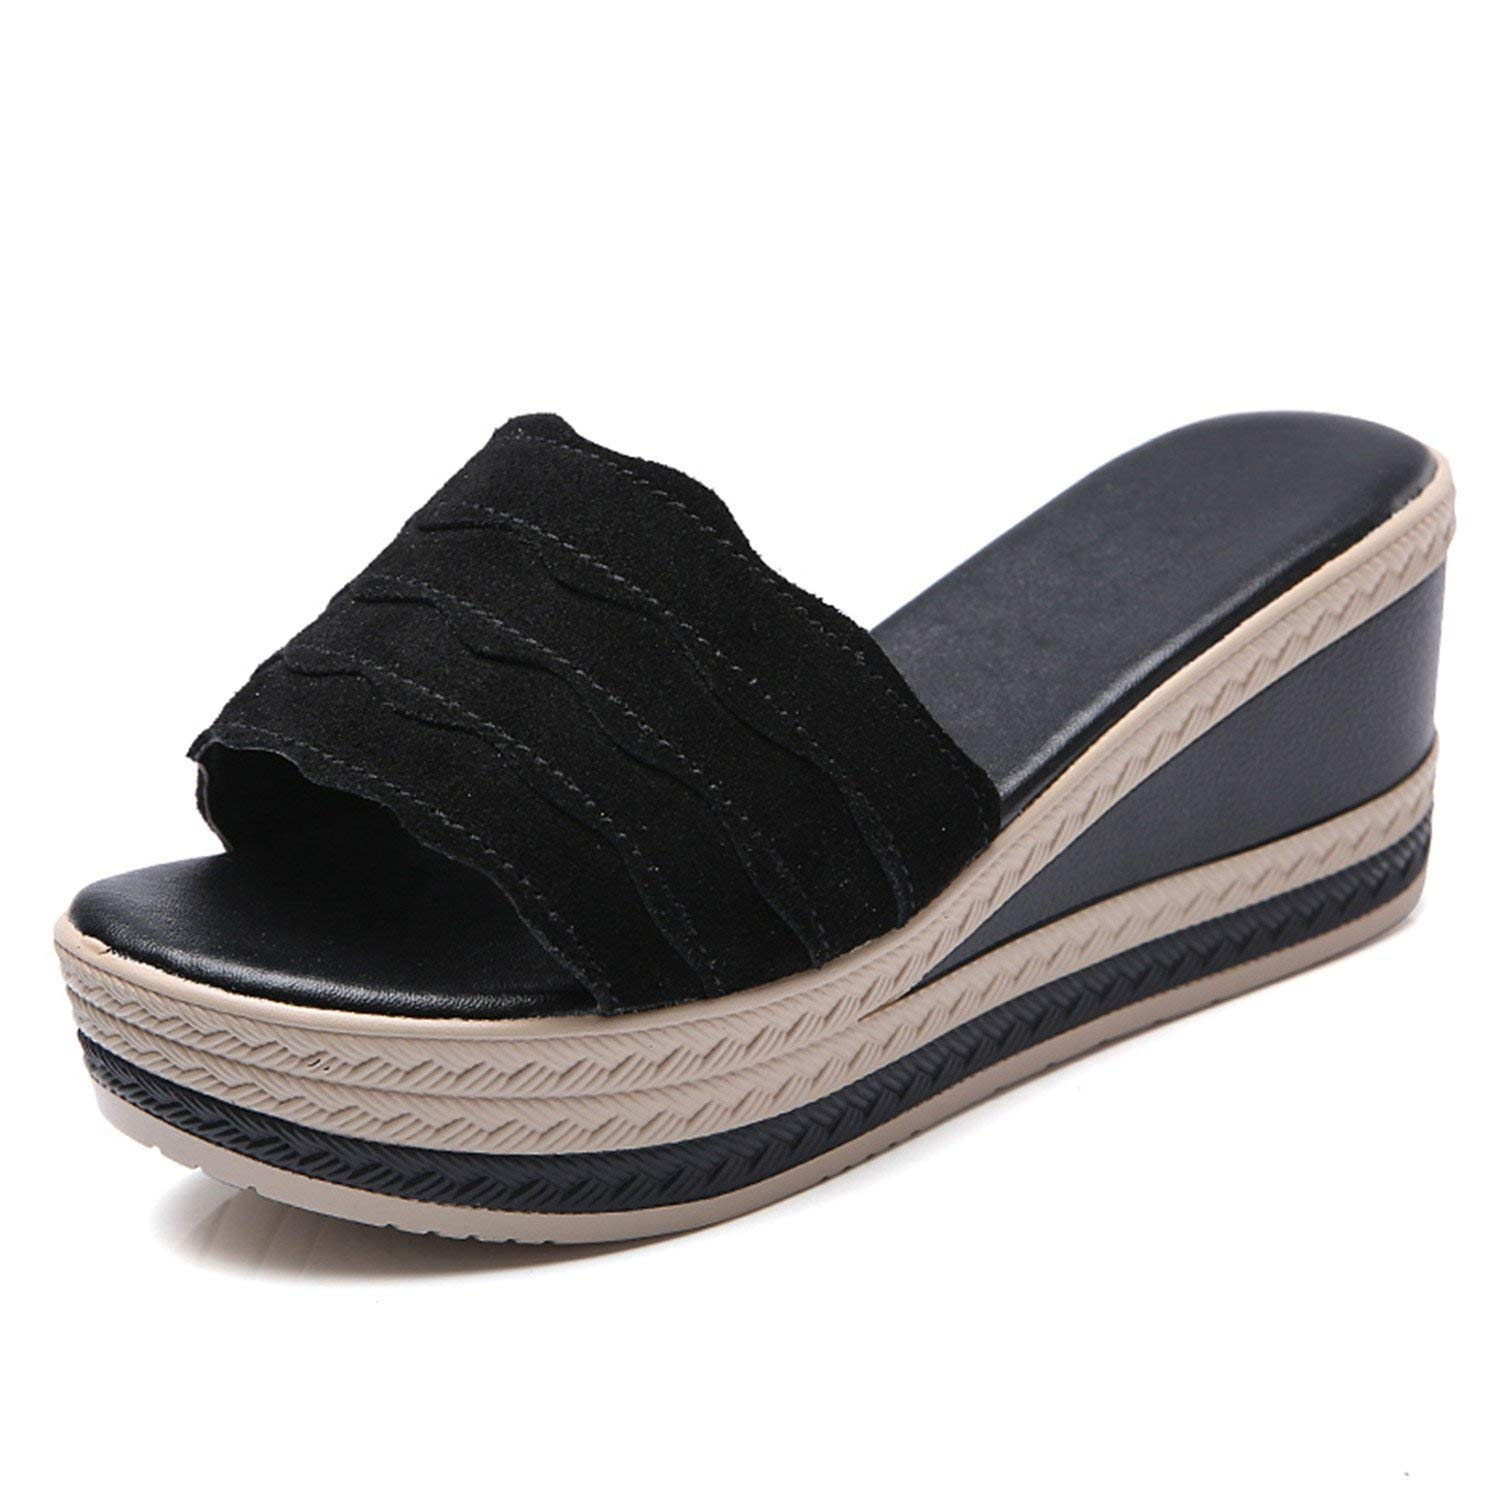 Cheap Ladies Wedge Mules Find Ladies Wedge Mules Deals On Line At